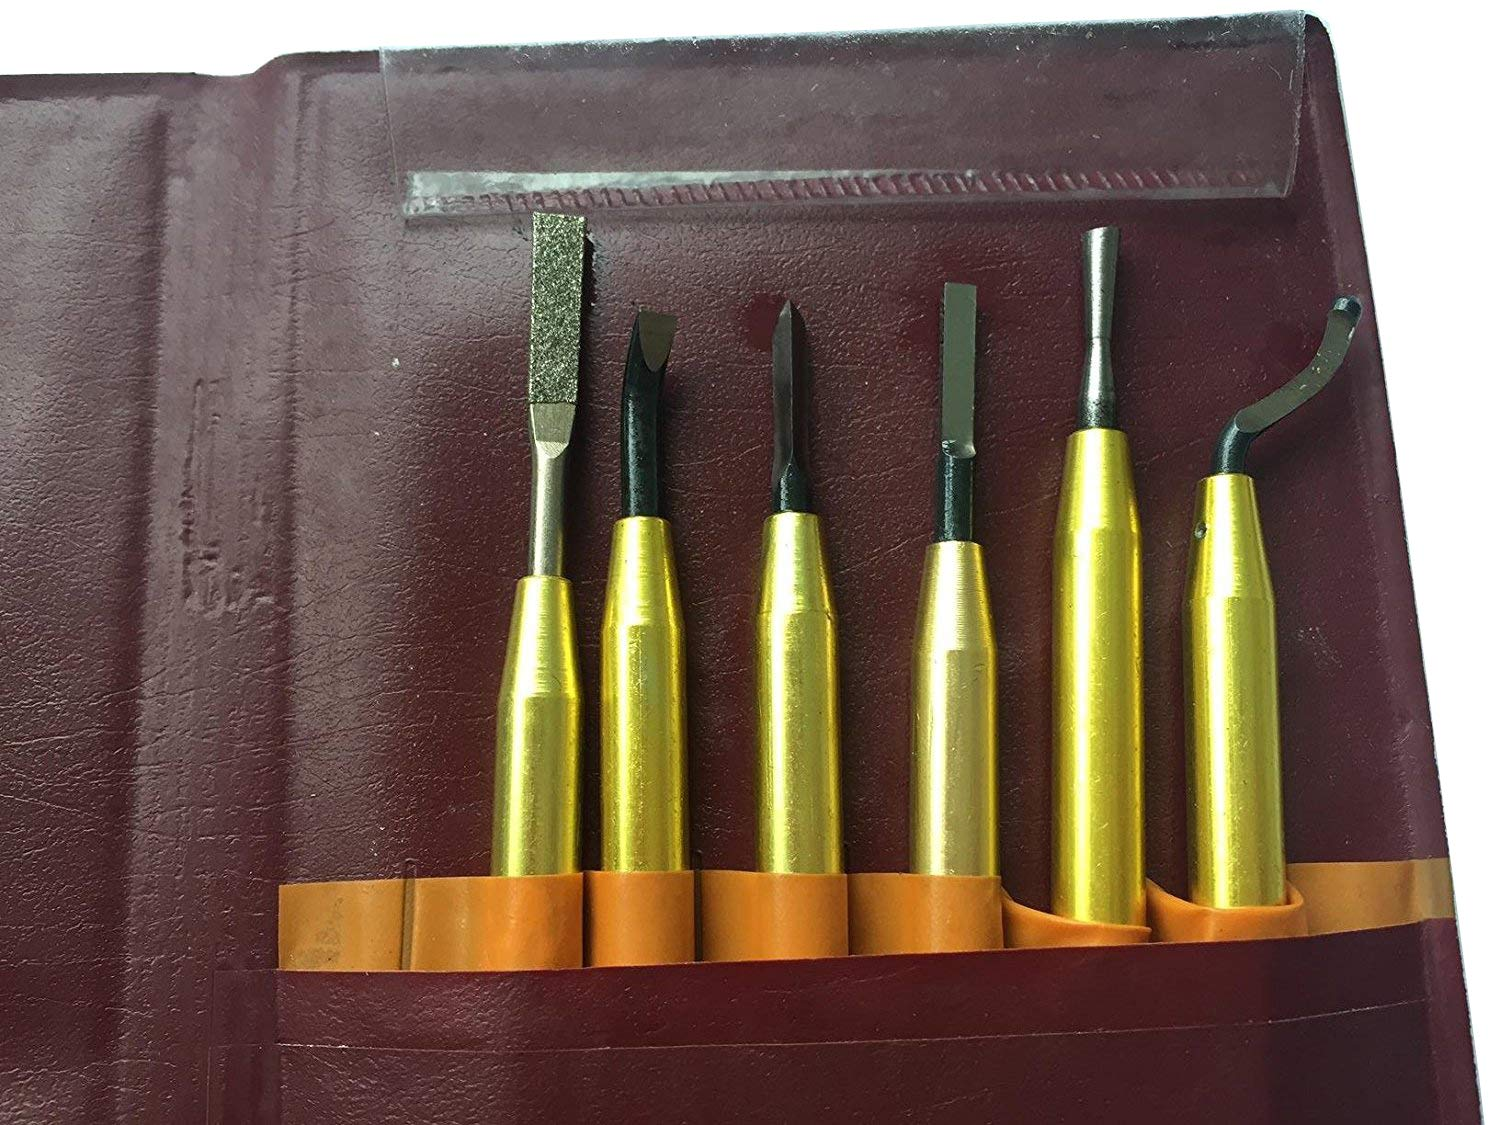 LLDSIMEX 6PCs Sets Deburring Tools Sets